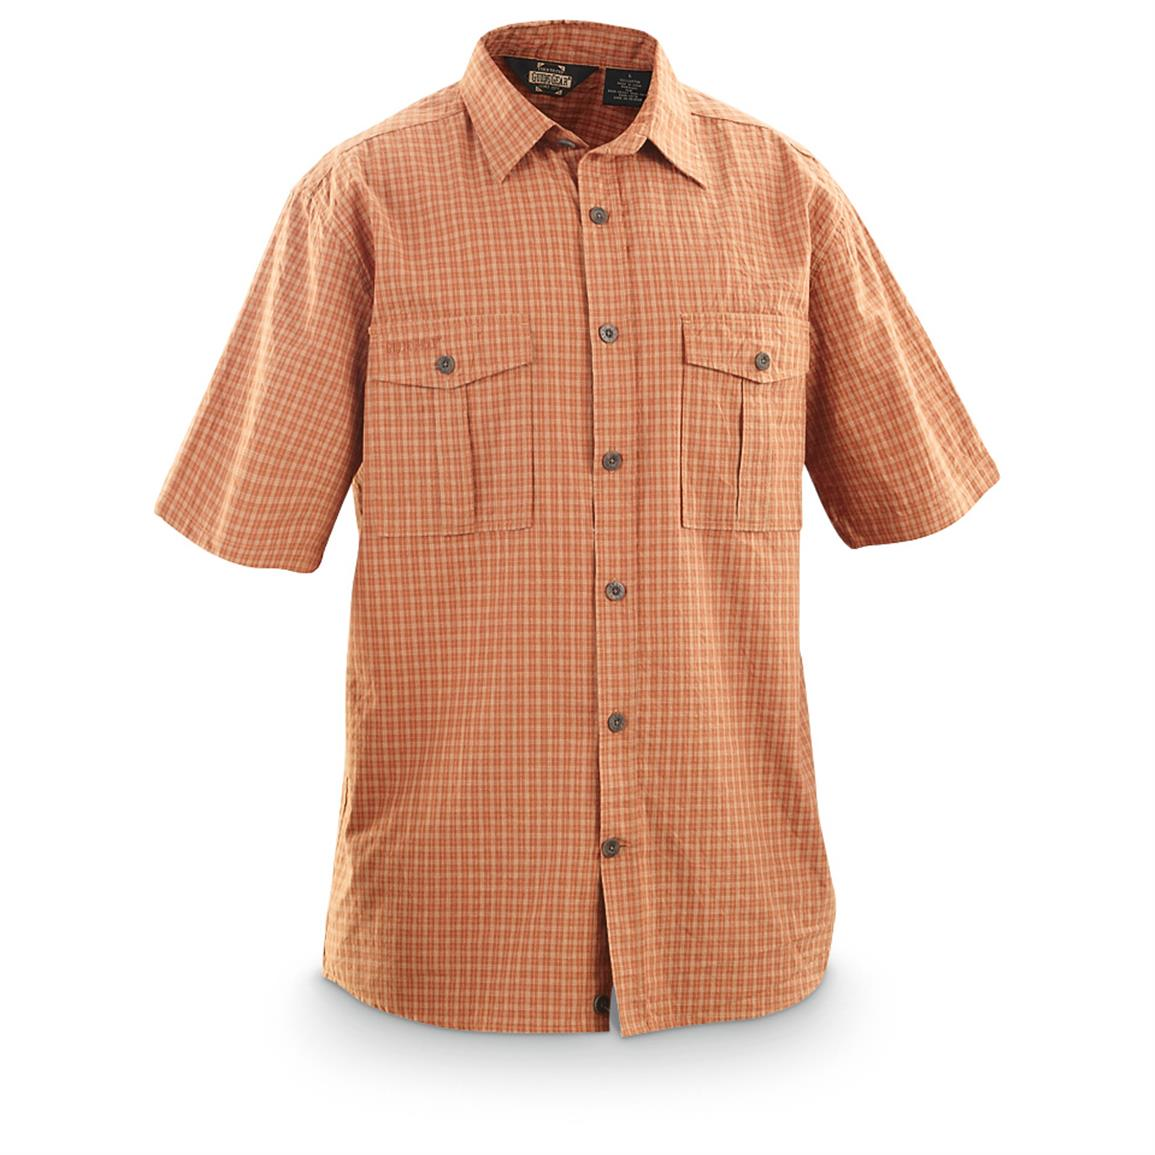 Guide Gear Men's Ripstop Plaid Short-Sleeve Shirt, Orange Plaid